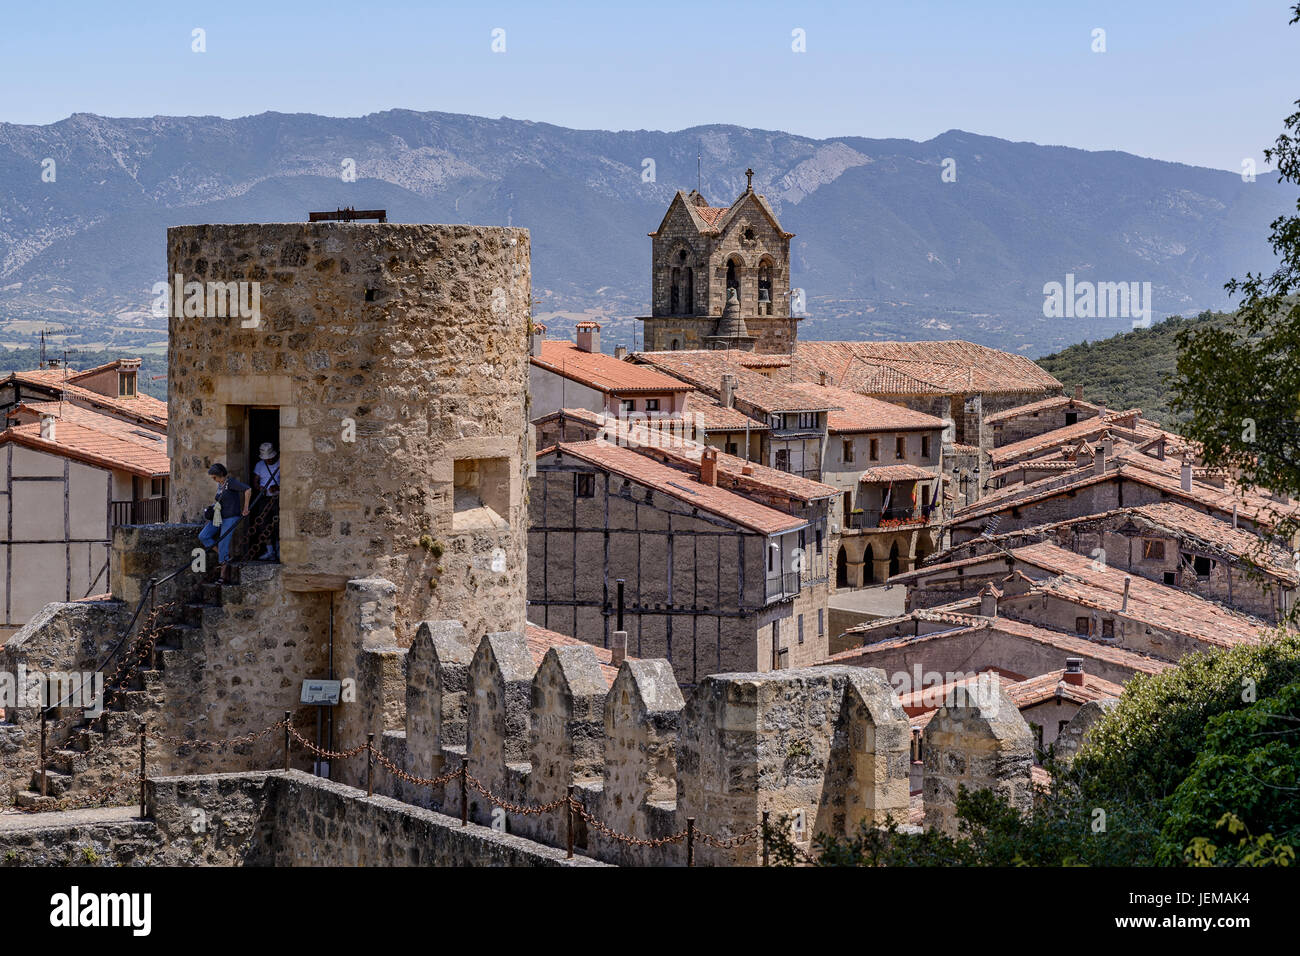 Panoramic view of Frias, Burgos, Castile and Leon, Spain - Stock Image